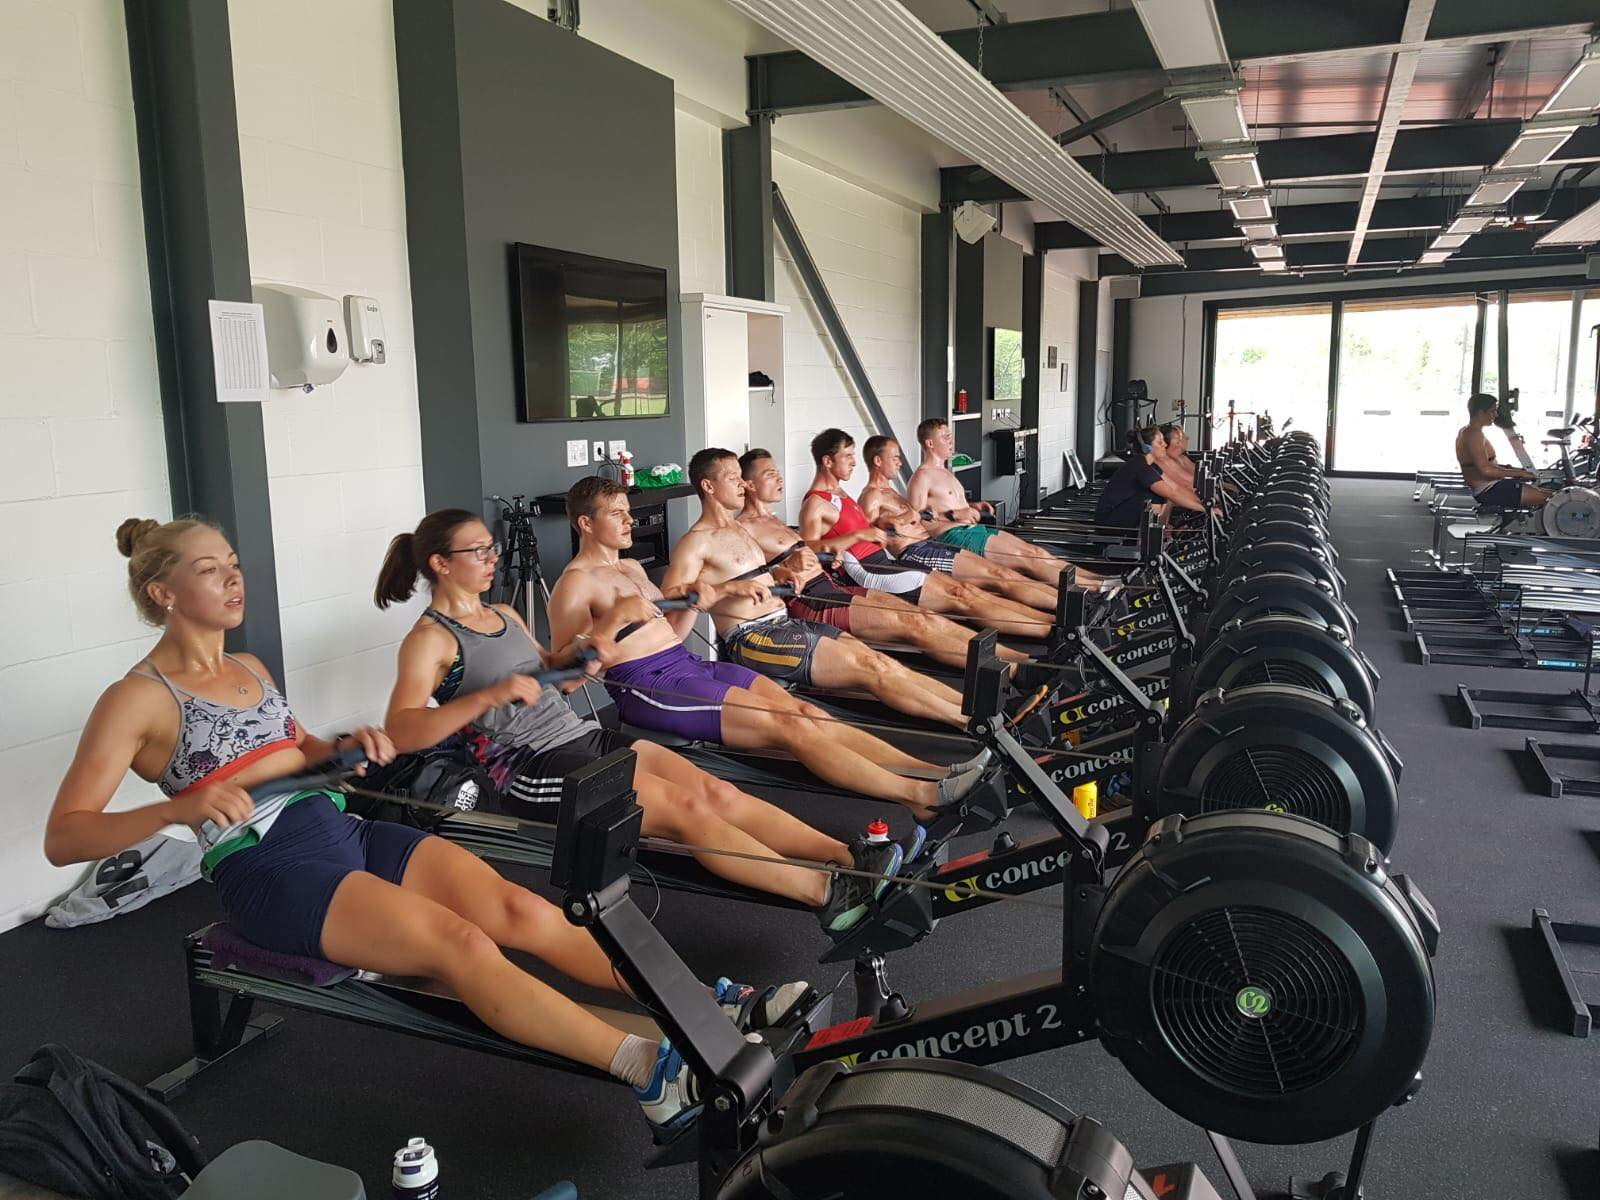 Being based in Catterick, Lucy found it tough doing the majority of her training on the erg rather than water, and training around an 8 week deployment in Norway proved particularly challenging.